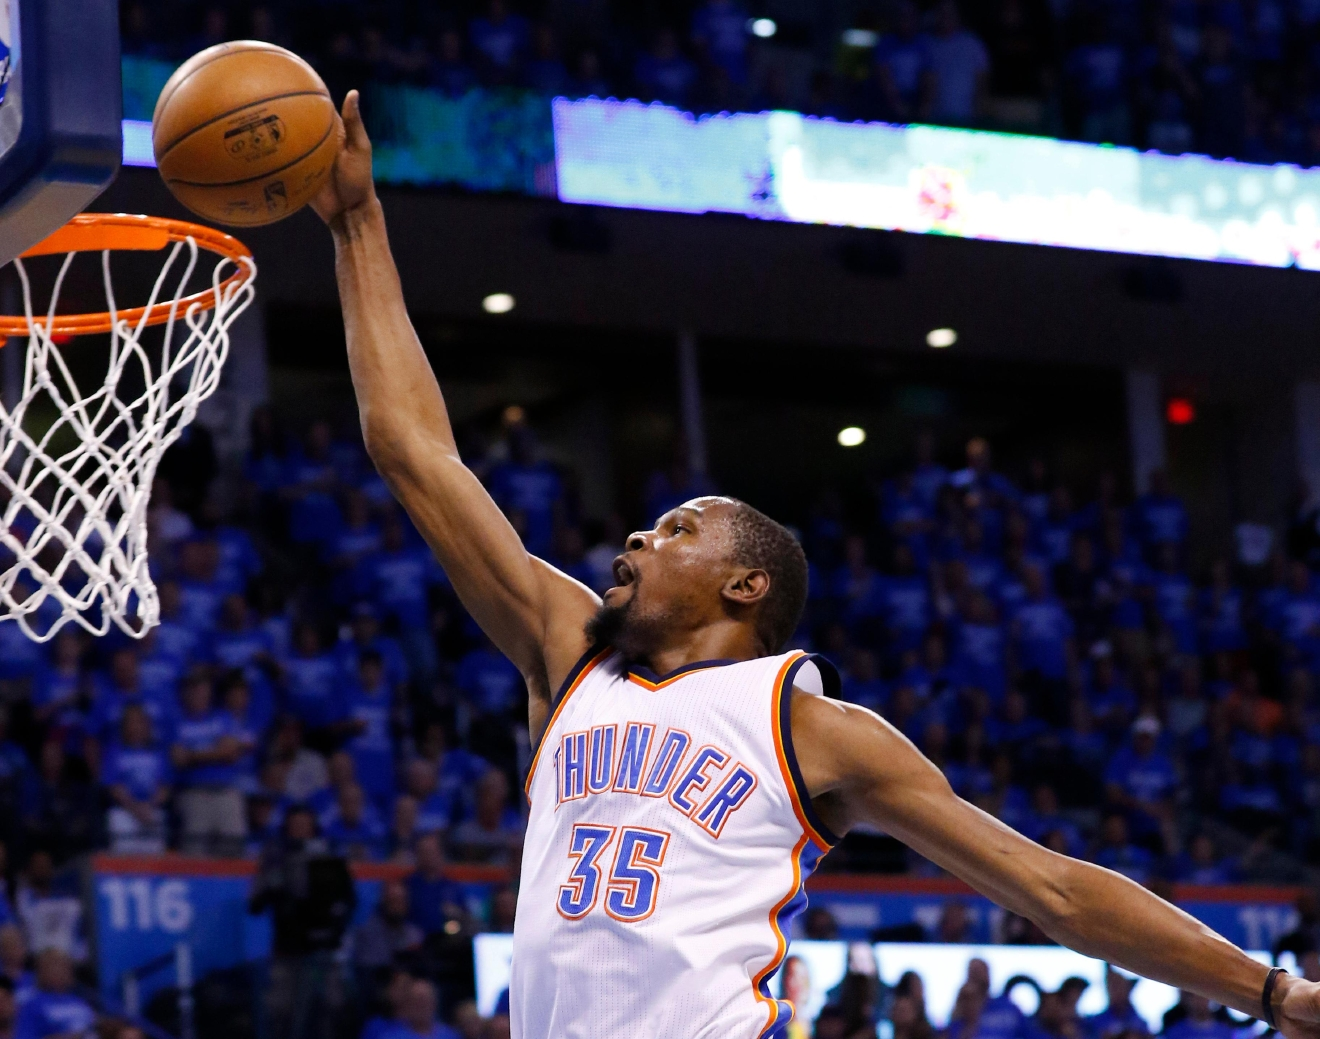 Oklahoma City Thunder forward Kevin Durant (35) dunks in the first quarter of Game 6 of a second-round NBA basketball playoff series against the San Antonio Spurs in Oklahoma City, Thursday, May 12, 2016. (AP Photo/Alonzo Adams)